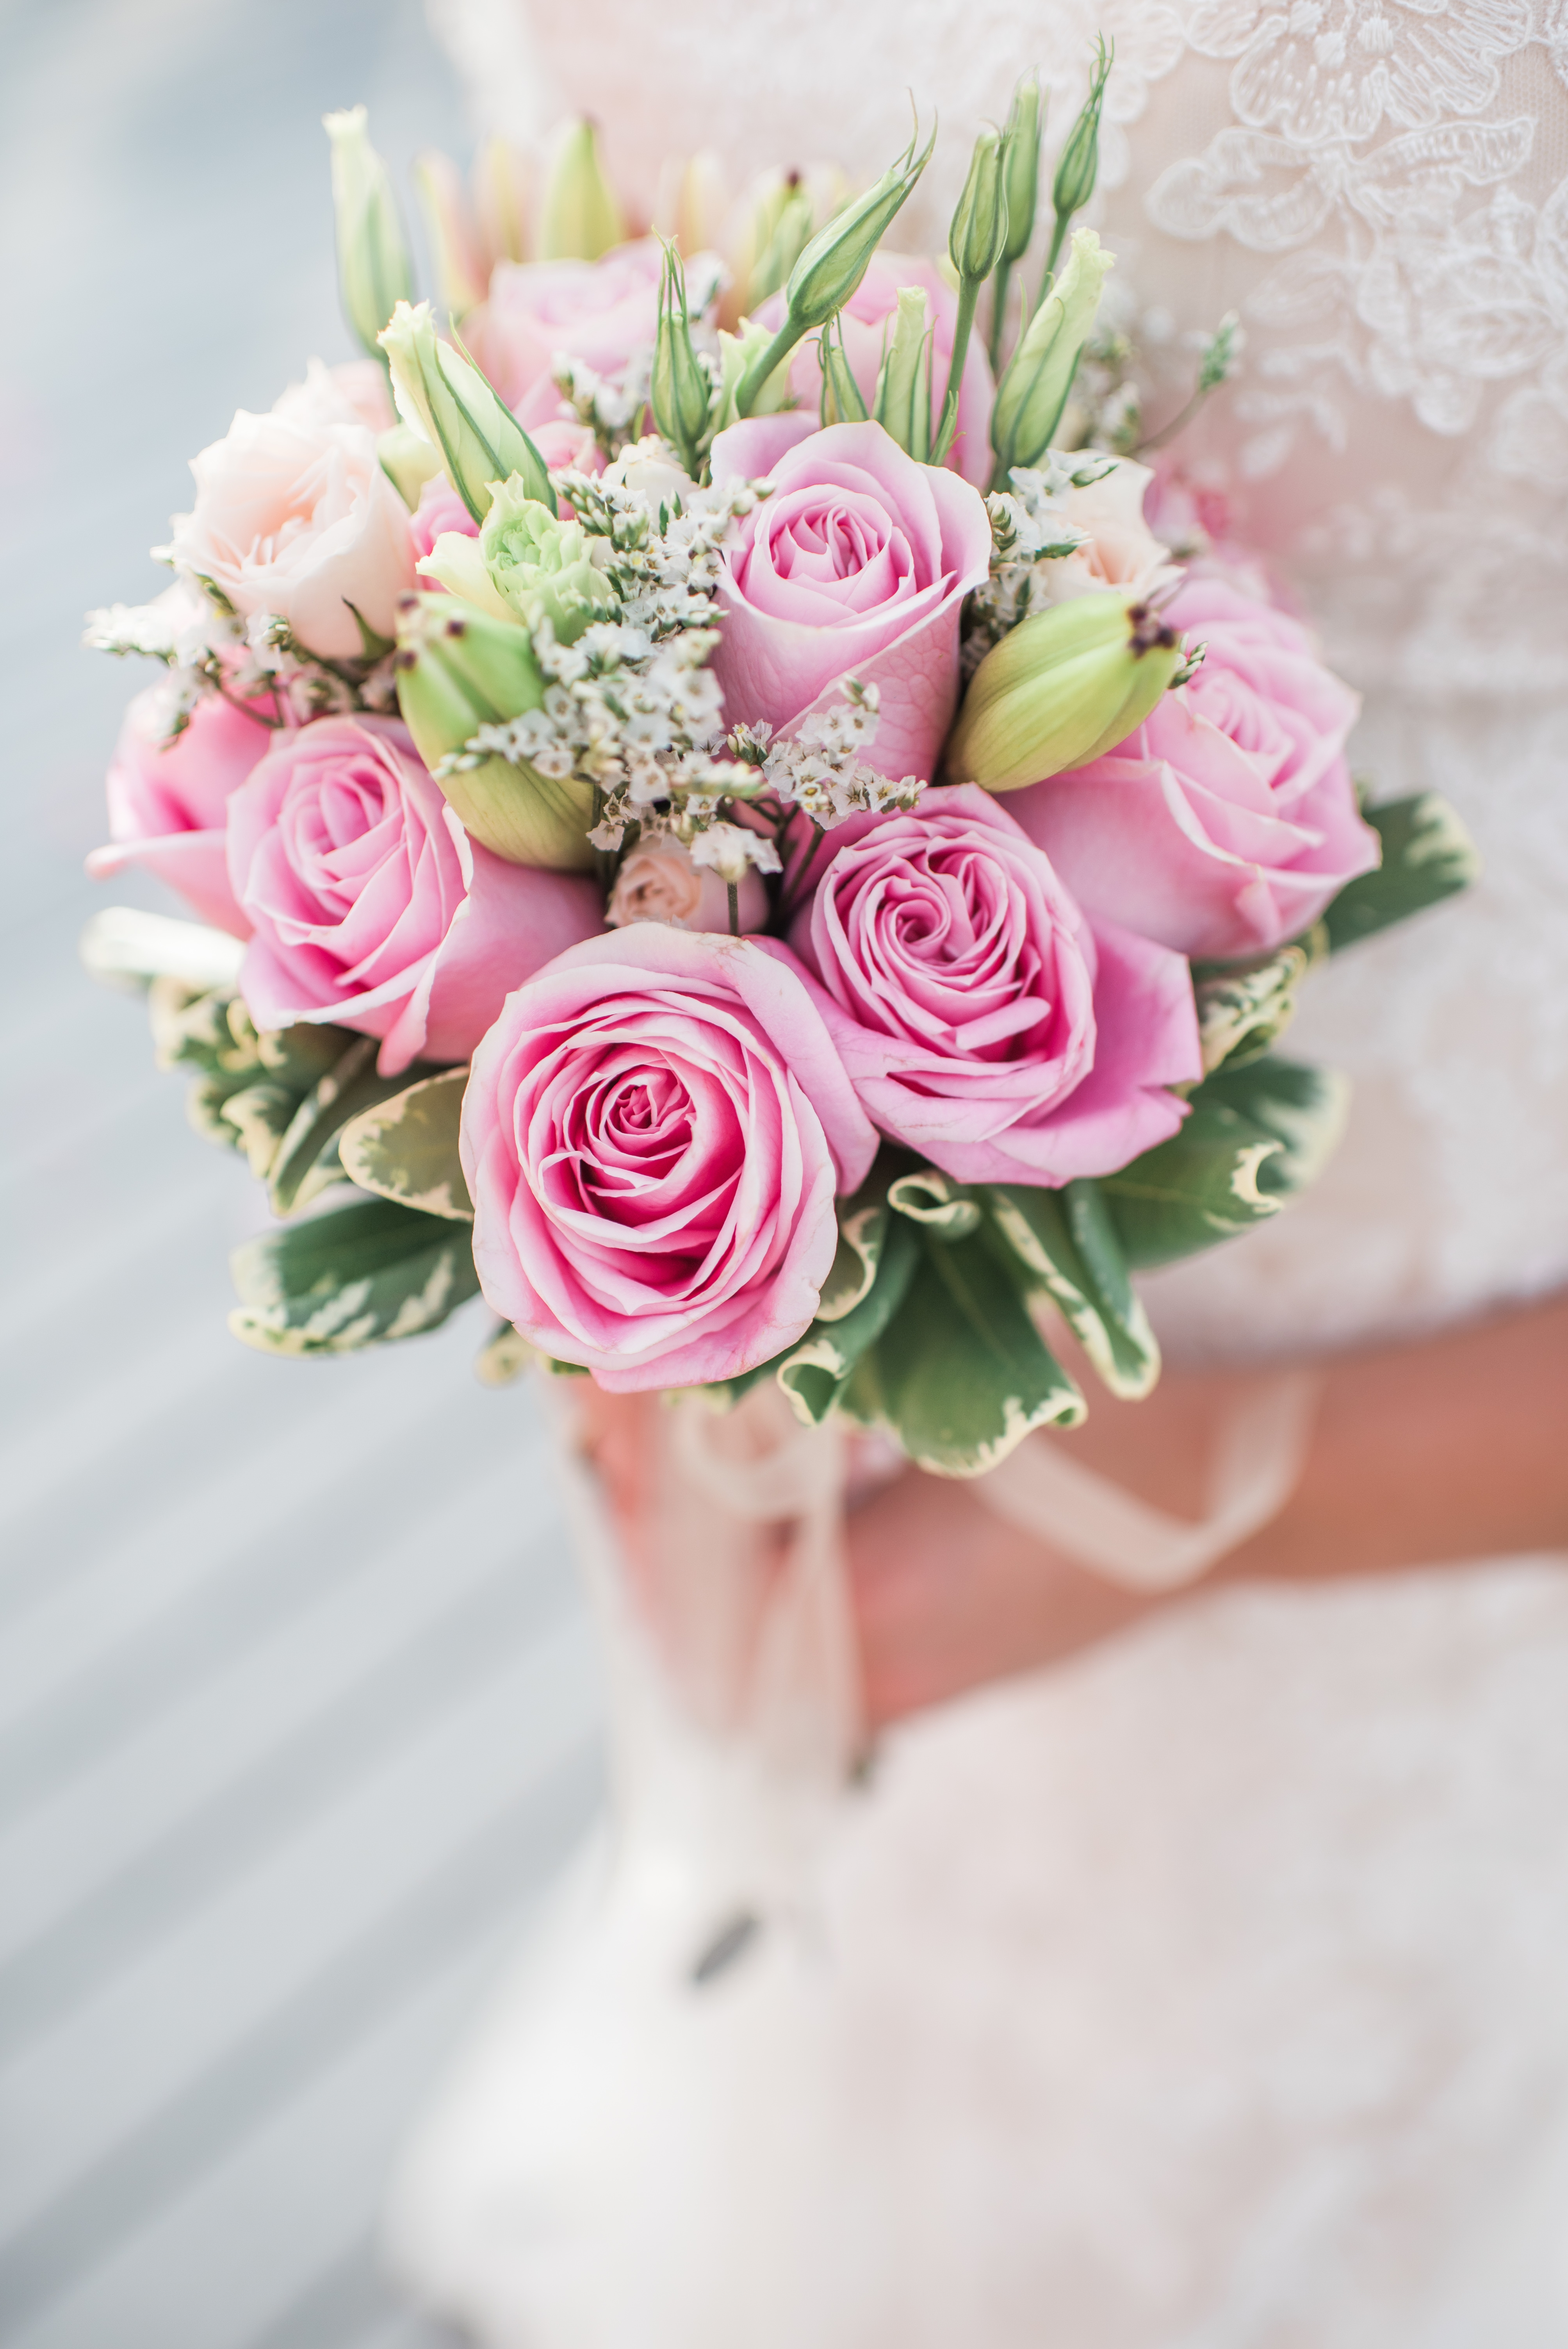 Rose bouquet with soft and sweet style